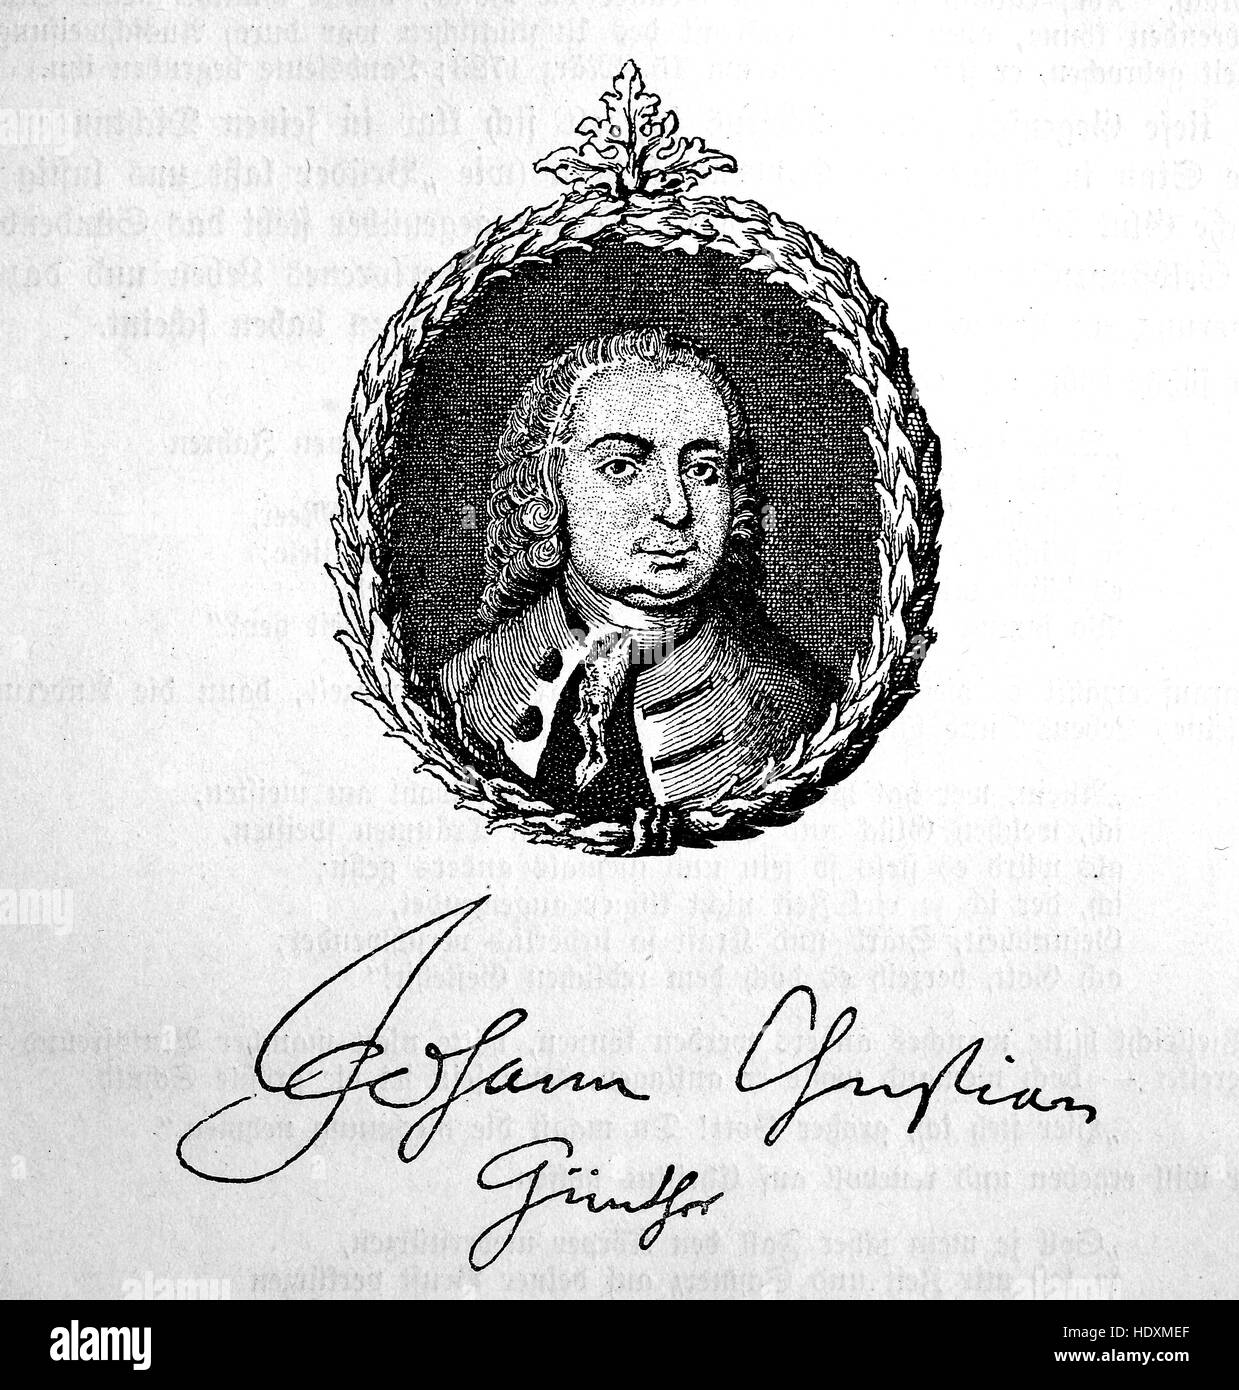 Johann Christian Guenther, 1695-1723, a German poet, woodcut from the year 1882, digital improved - Stock Image